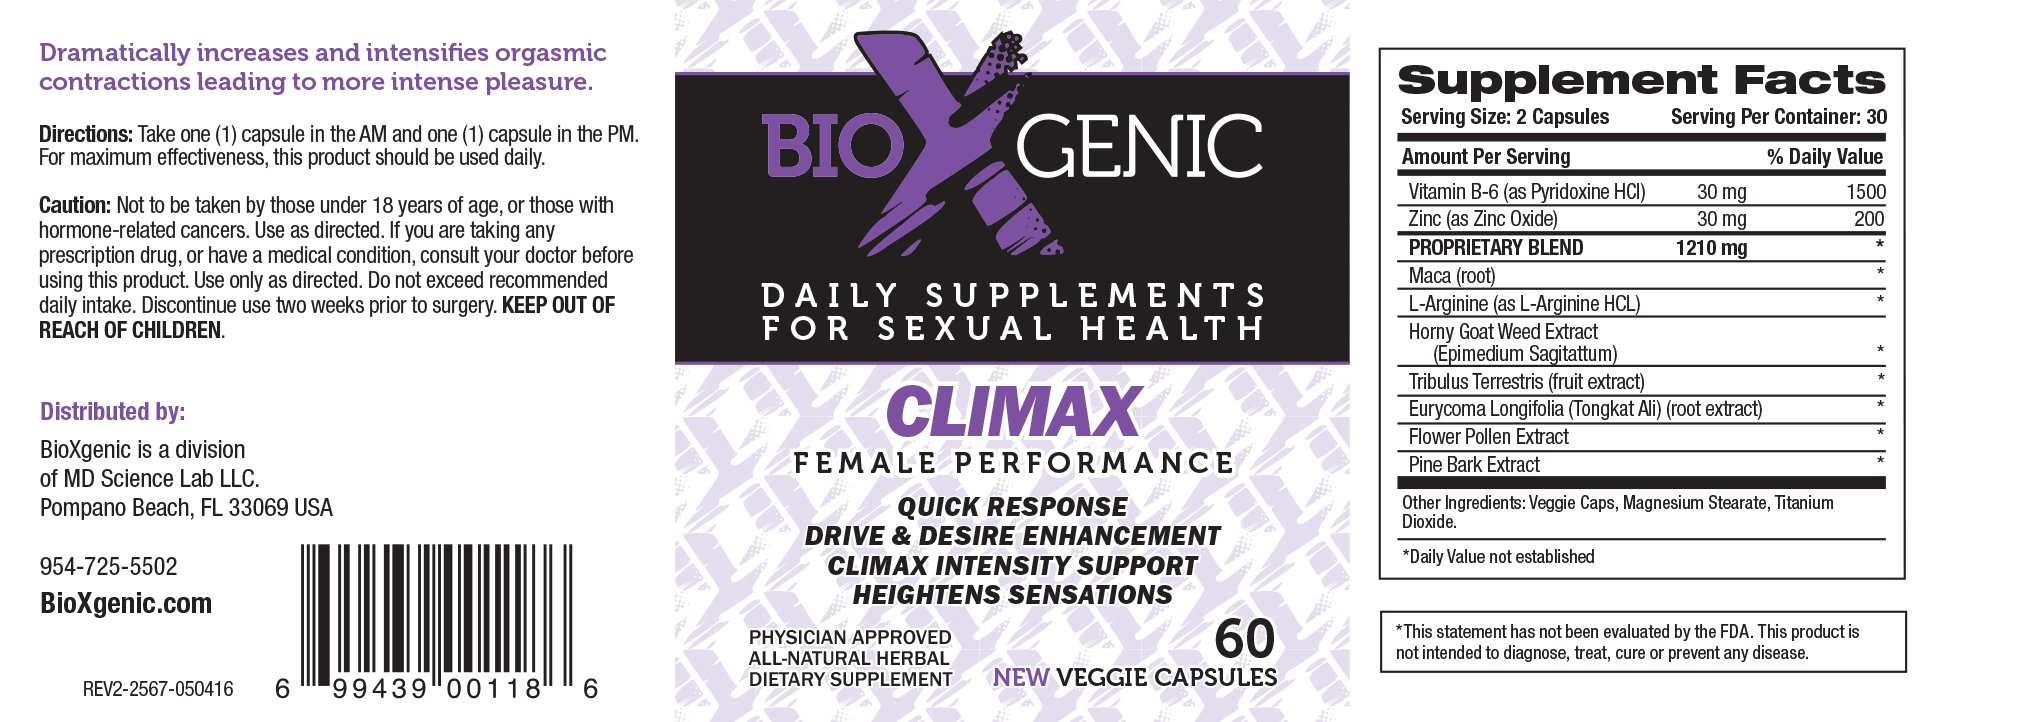 BioXGenic Climax Female Performance 60 Capsules